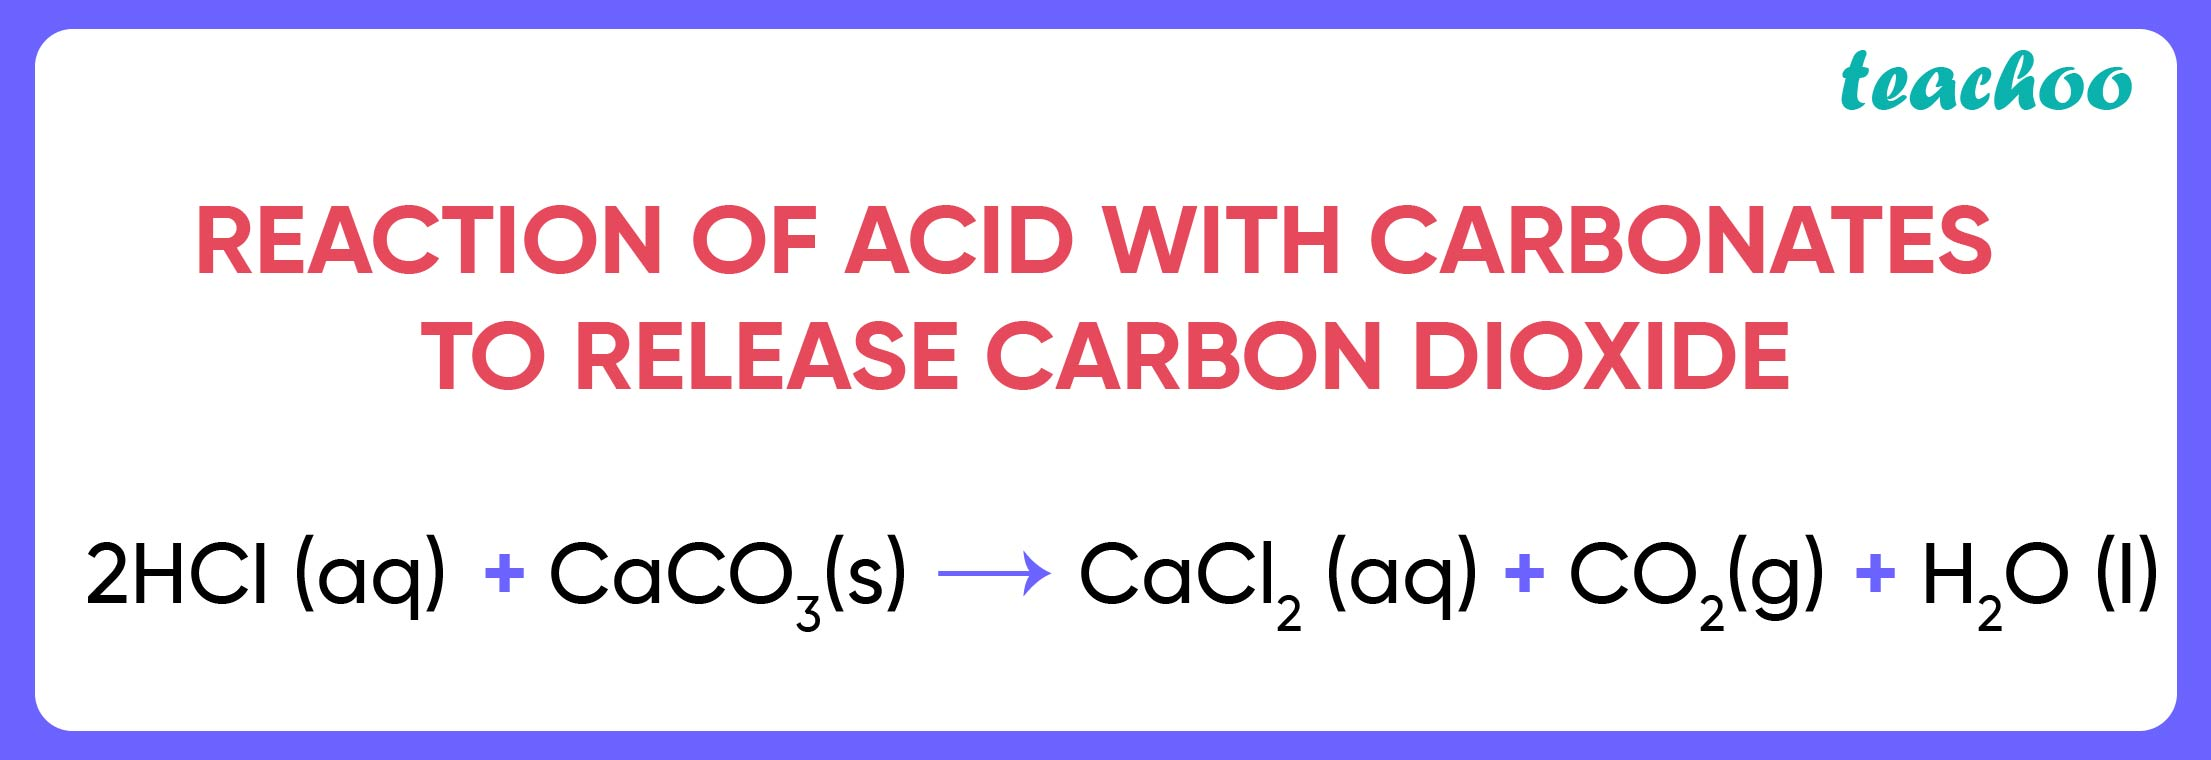 Reaction of Acid with Carbonates to release Carbon Dioxide-01.jpg